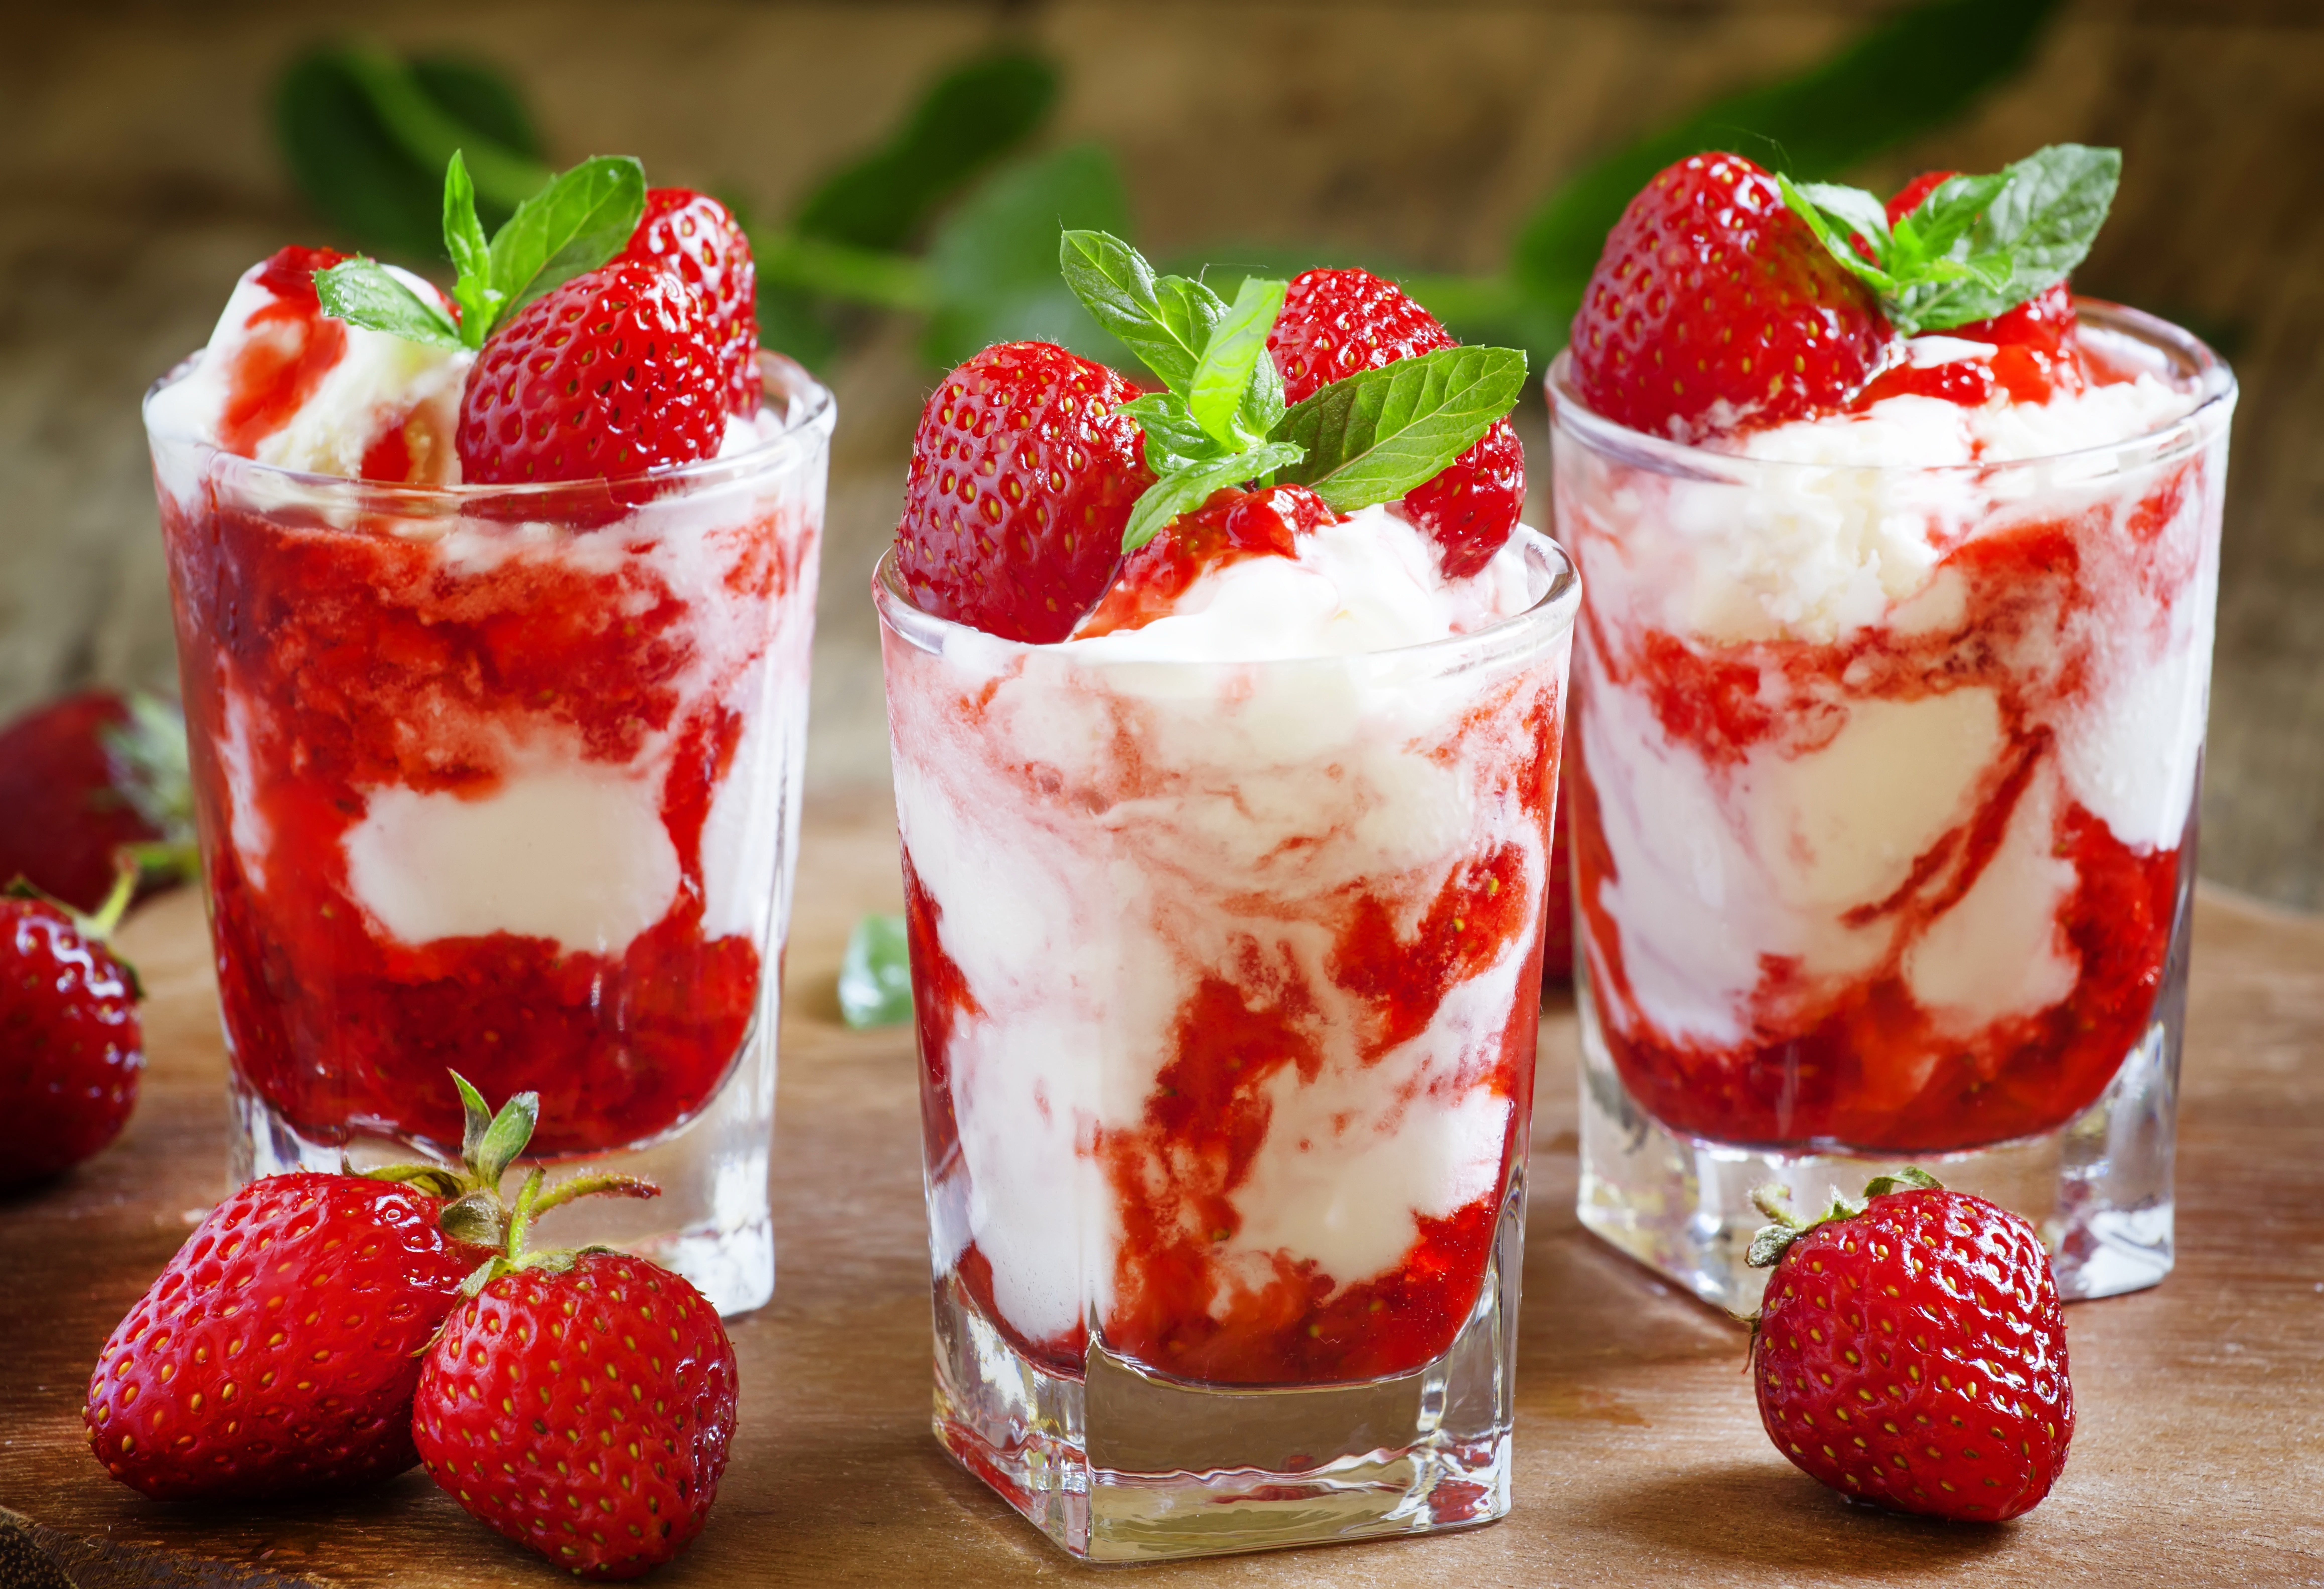 28 Lovely Hd Ice Cream Wallpapers: Download Strawberry Ice Cream Wallpaper Gallery